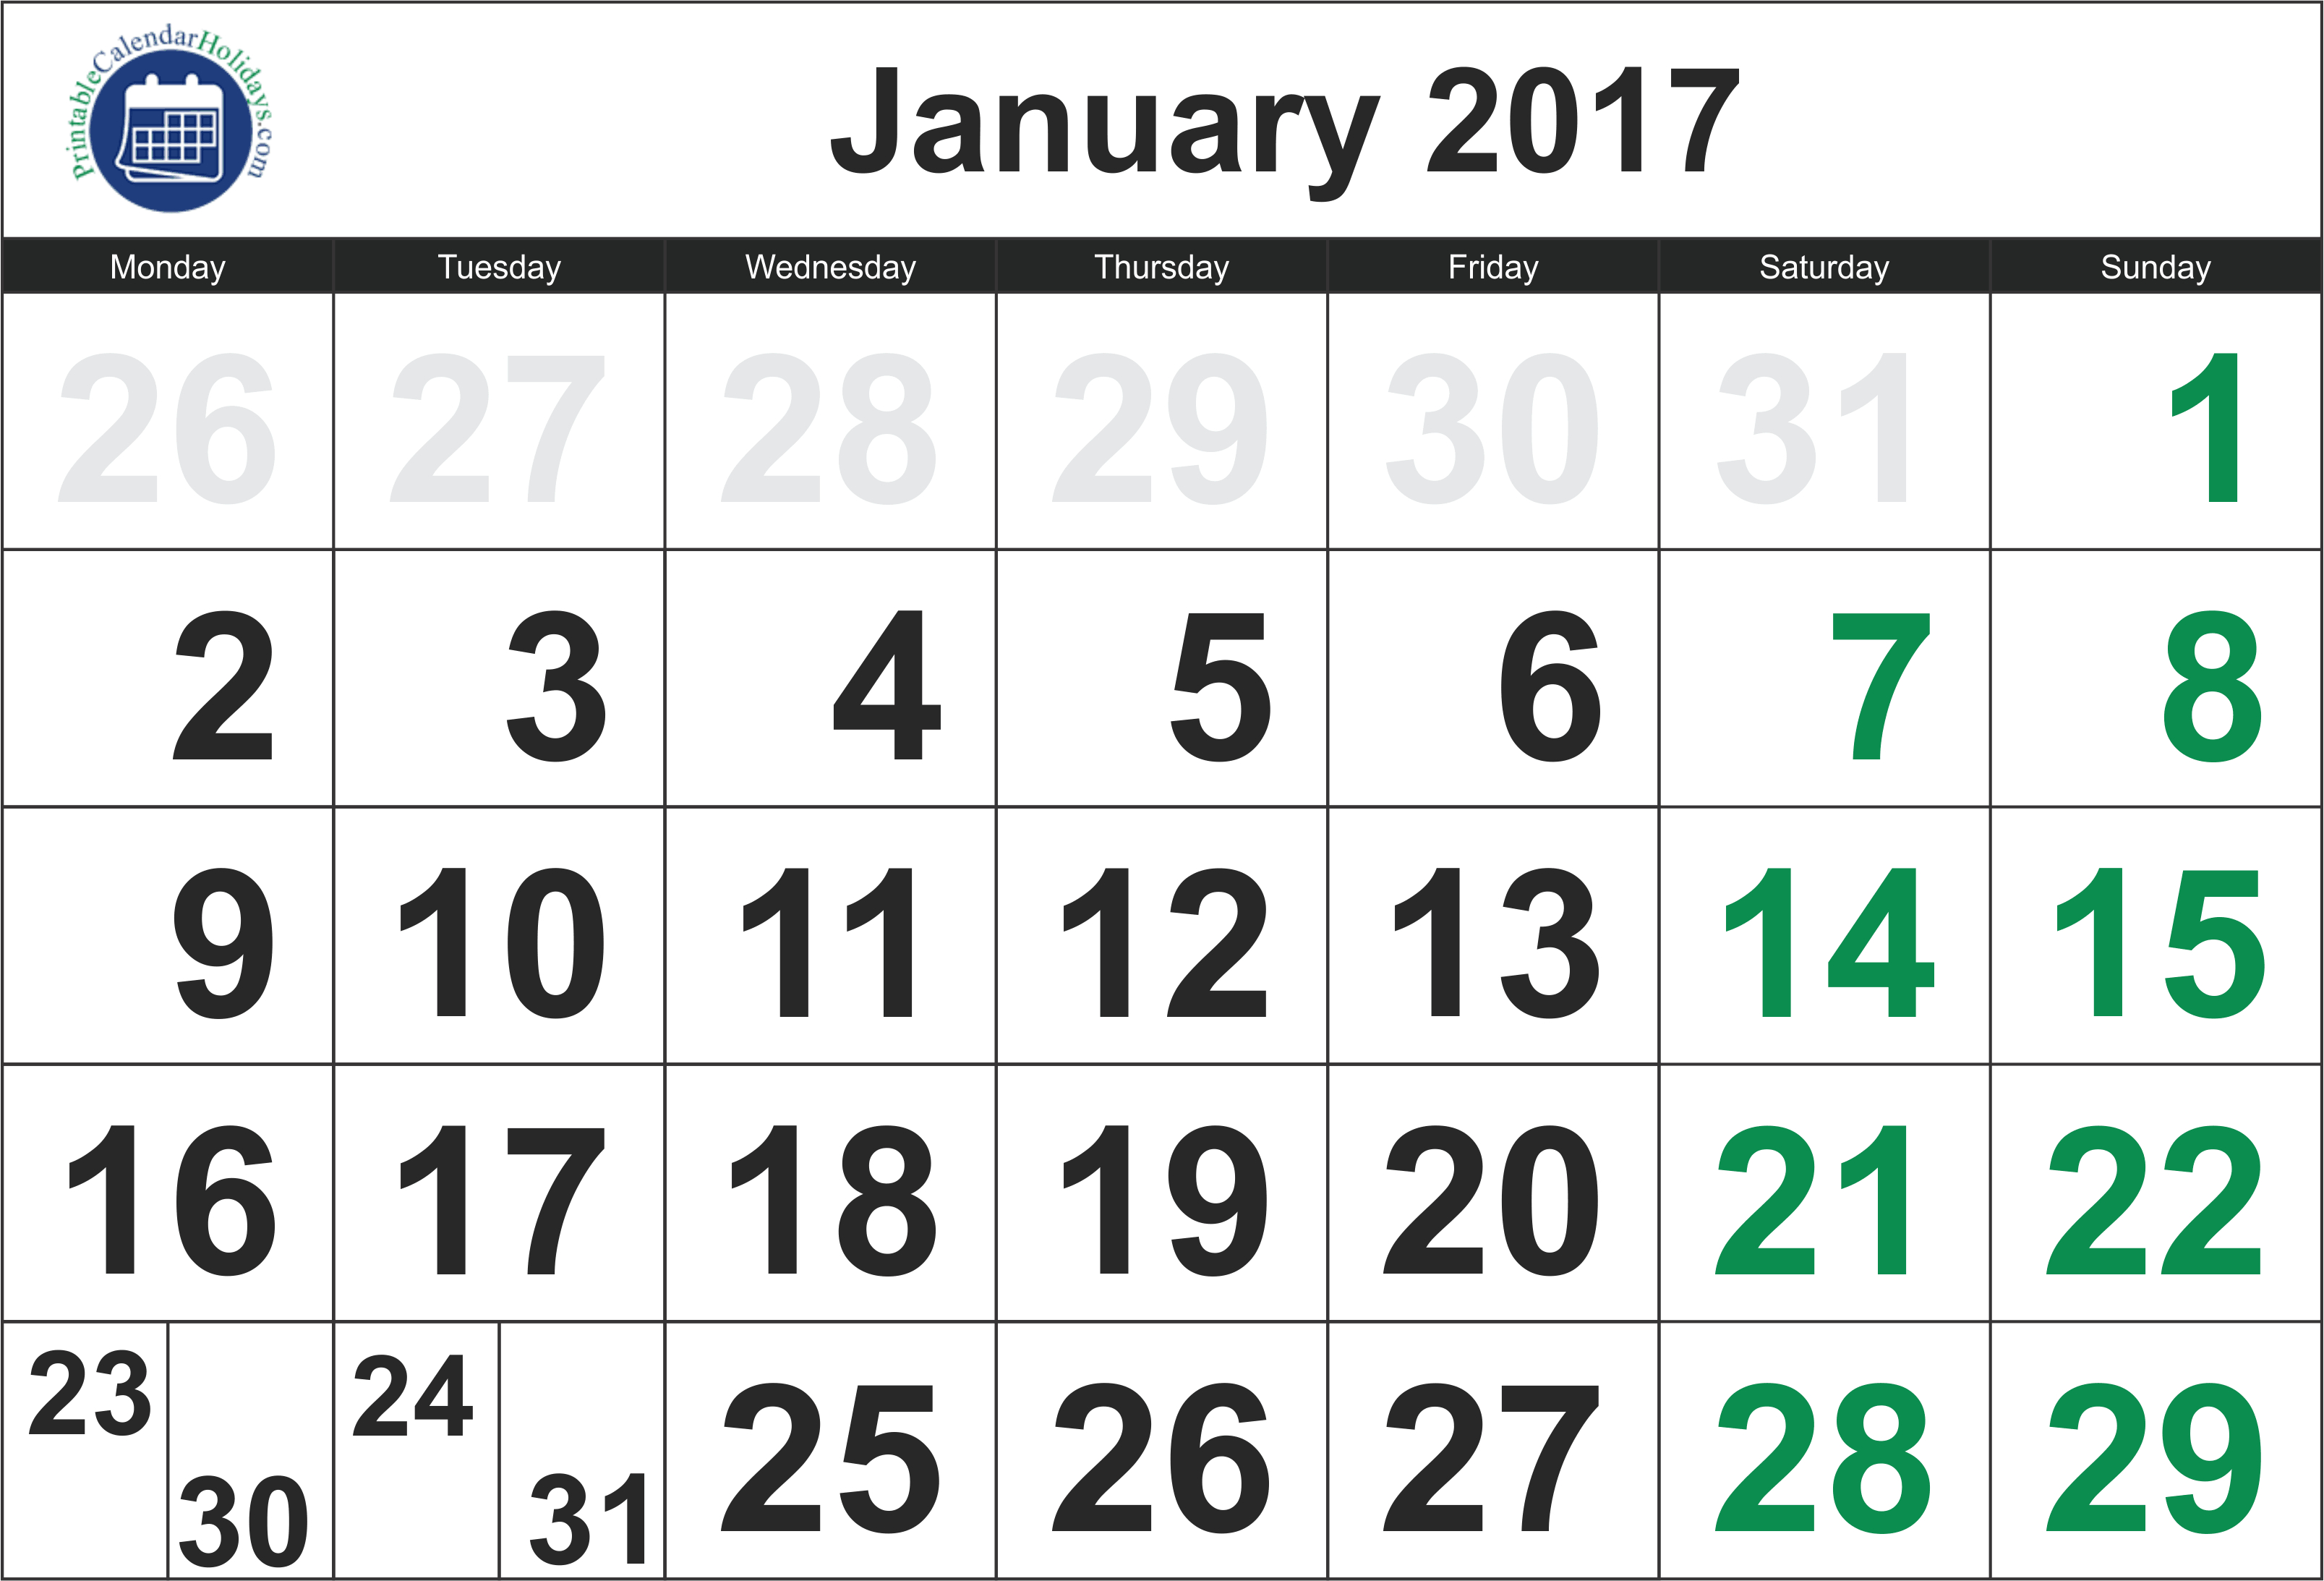 2017 January Calendar - Printable Calendar Template 2020 2021 intended for Free Large Number Printable Calendars